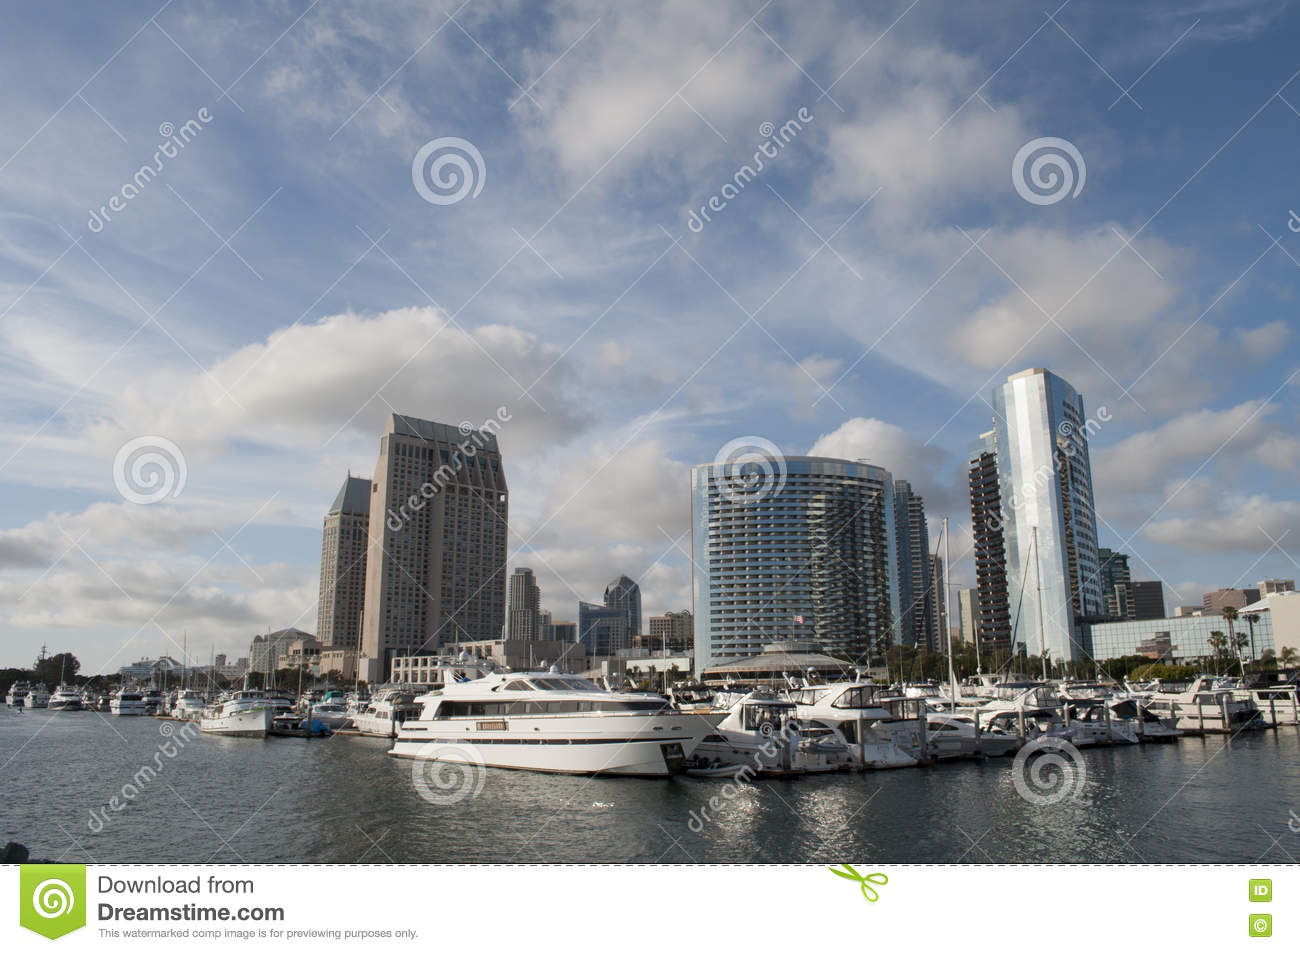 Yachts in San Diego